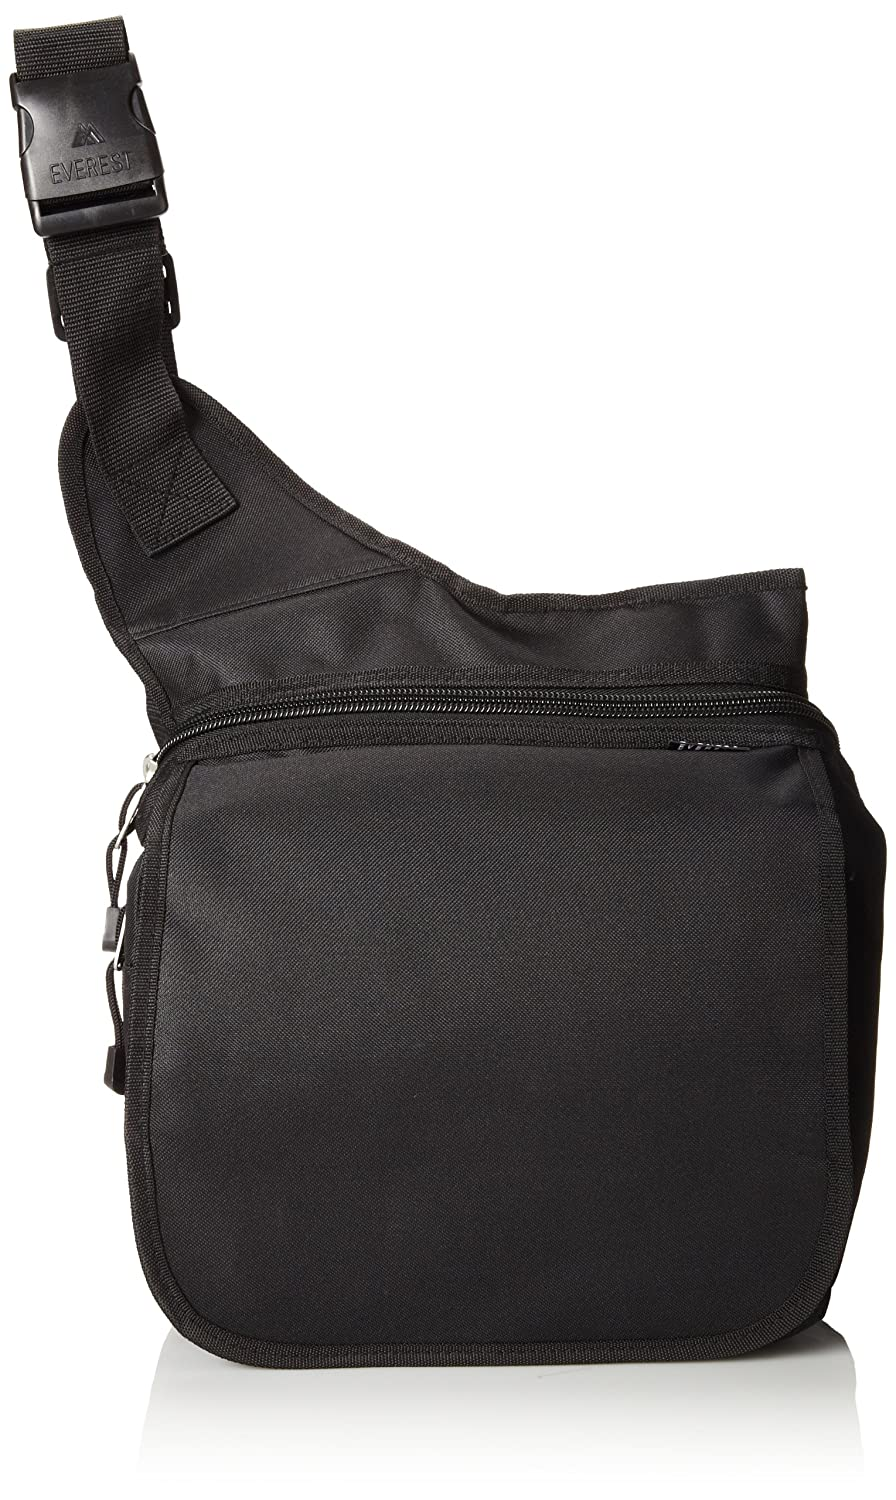 Everest Messenger Bag – Large, Black, One Size